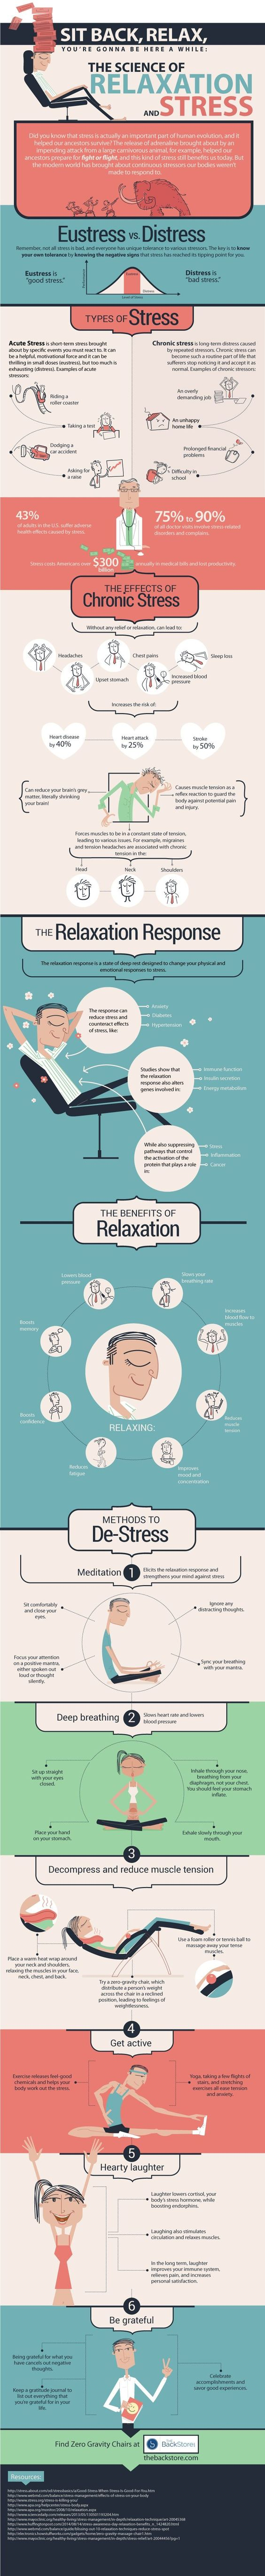 We all have to deal with stressful situations. Not all stress is bad for you. This infographic from the Back Store covers various types of stress and how you can de-stress: